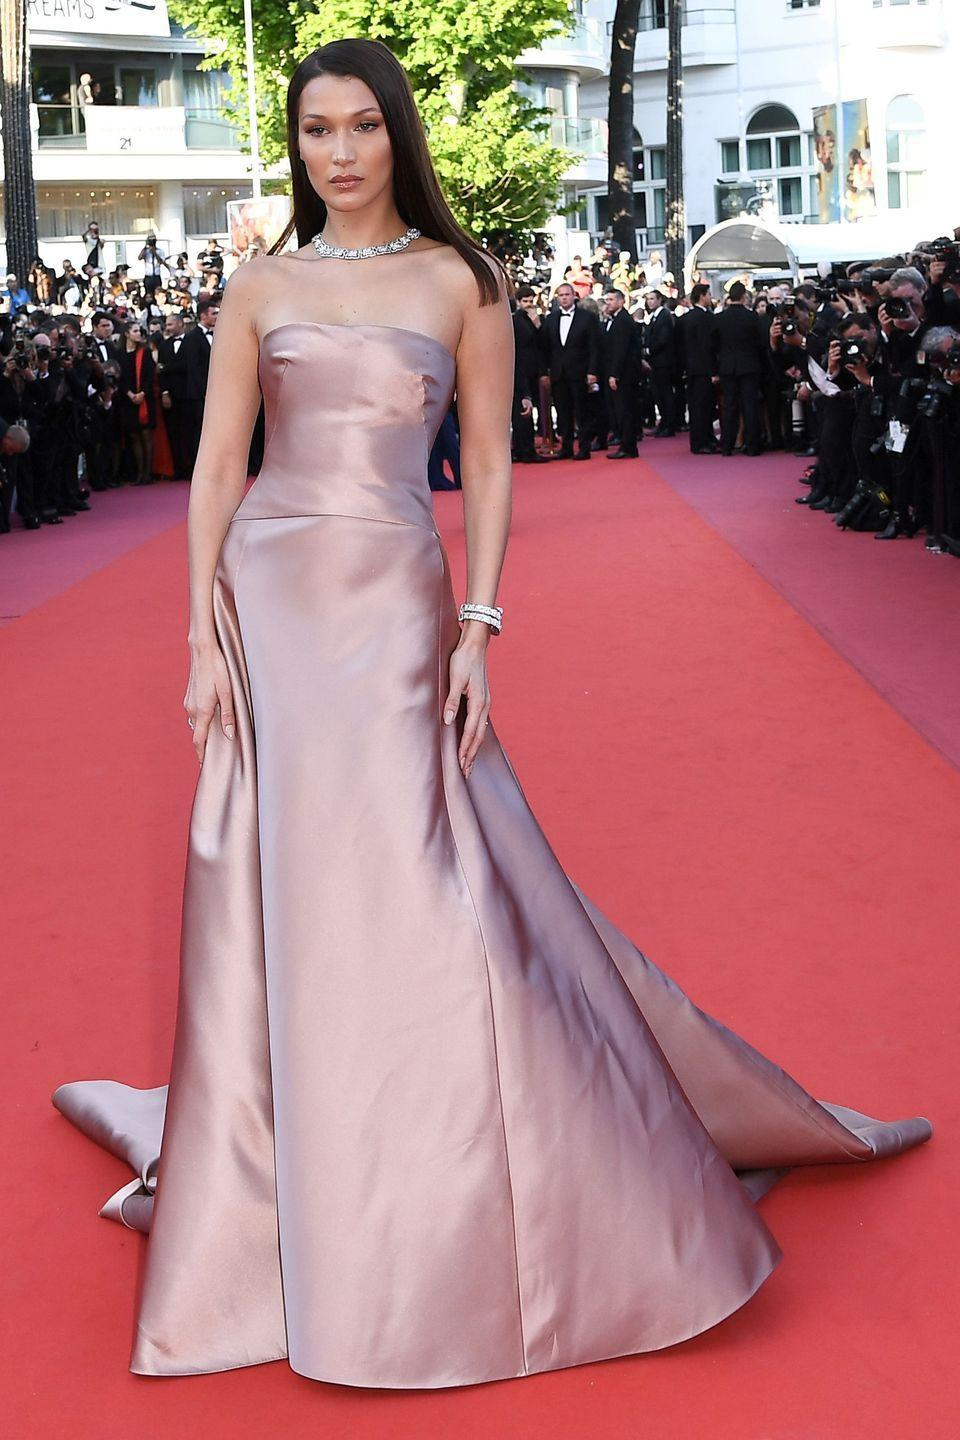 """<p>in a strapless silk blush pink gown with a diamond choker, bracelets, and ring at the <a href=""""https://www.harpersbazaar.com/celebrity/red-carpet-dresses/g20529068/cannes-2018-red-carpet/"""" rel=""""nofollow noopener"""" target=""""_blank"""" data-ylk=""""slk:Cannes Film Festival"""" class=""""link rapid-noclick-resp"""">Cannes Film Festival</a>.</p>"""